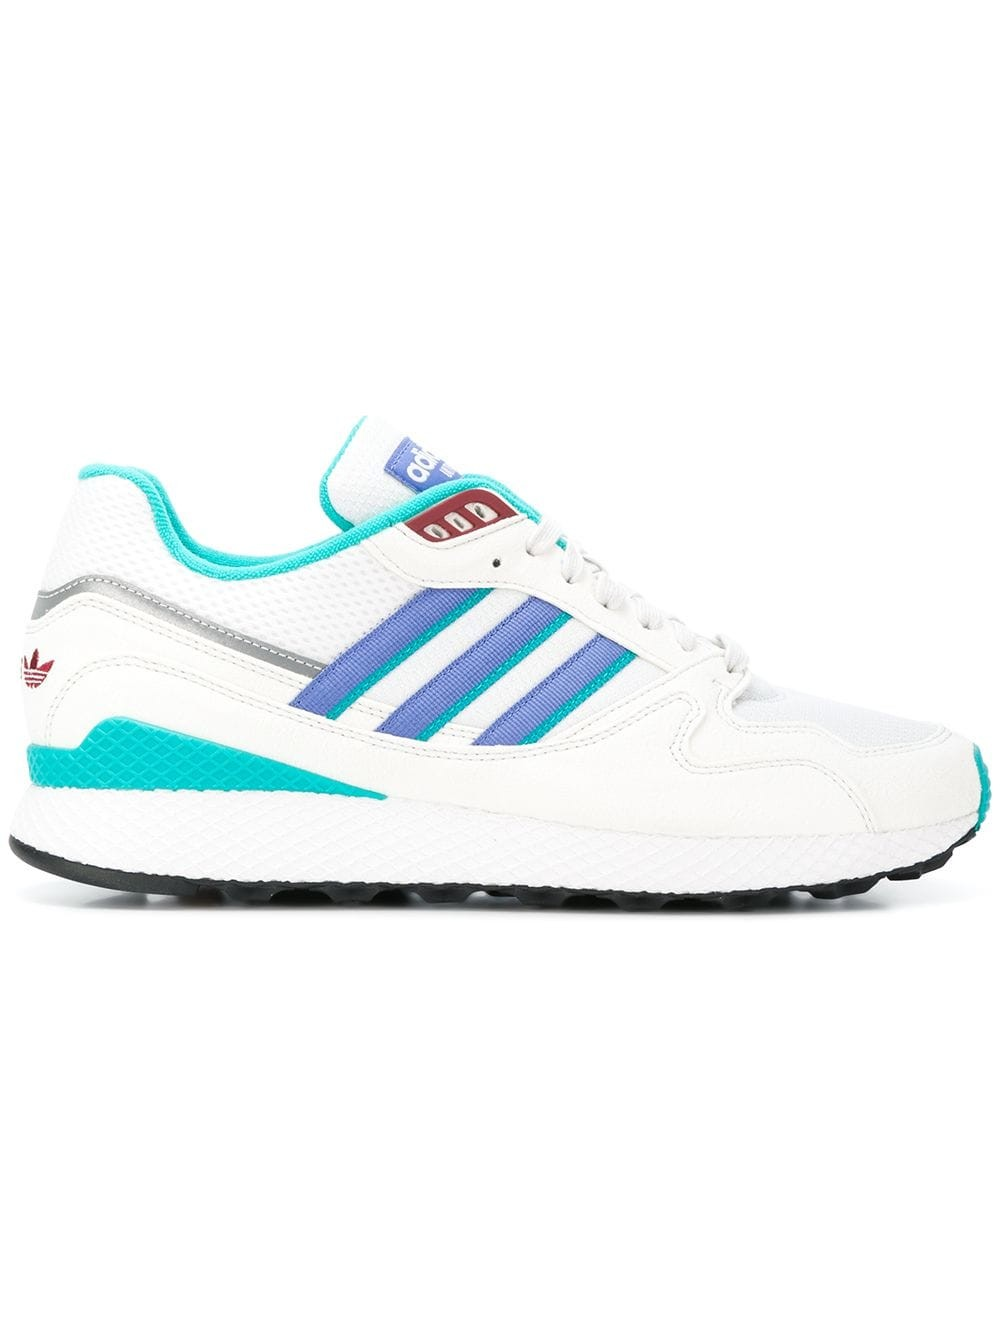 Adidas Originals Ultra Tech Blanche/Blanche/turquoise B37916